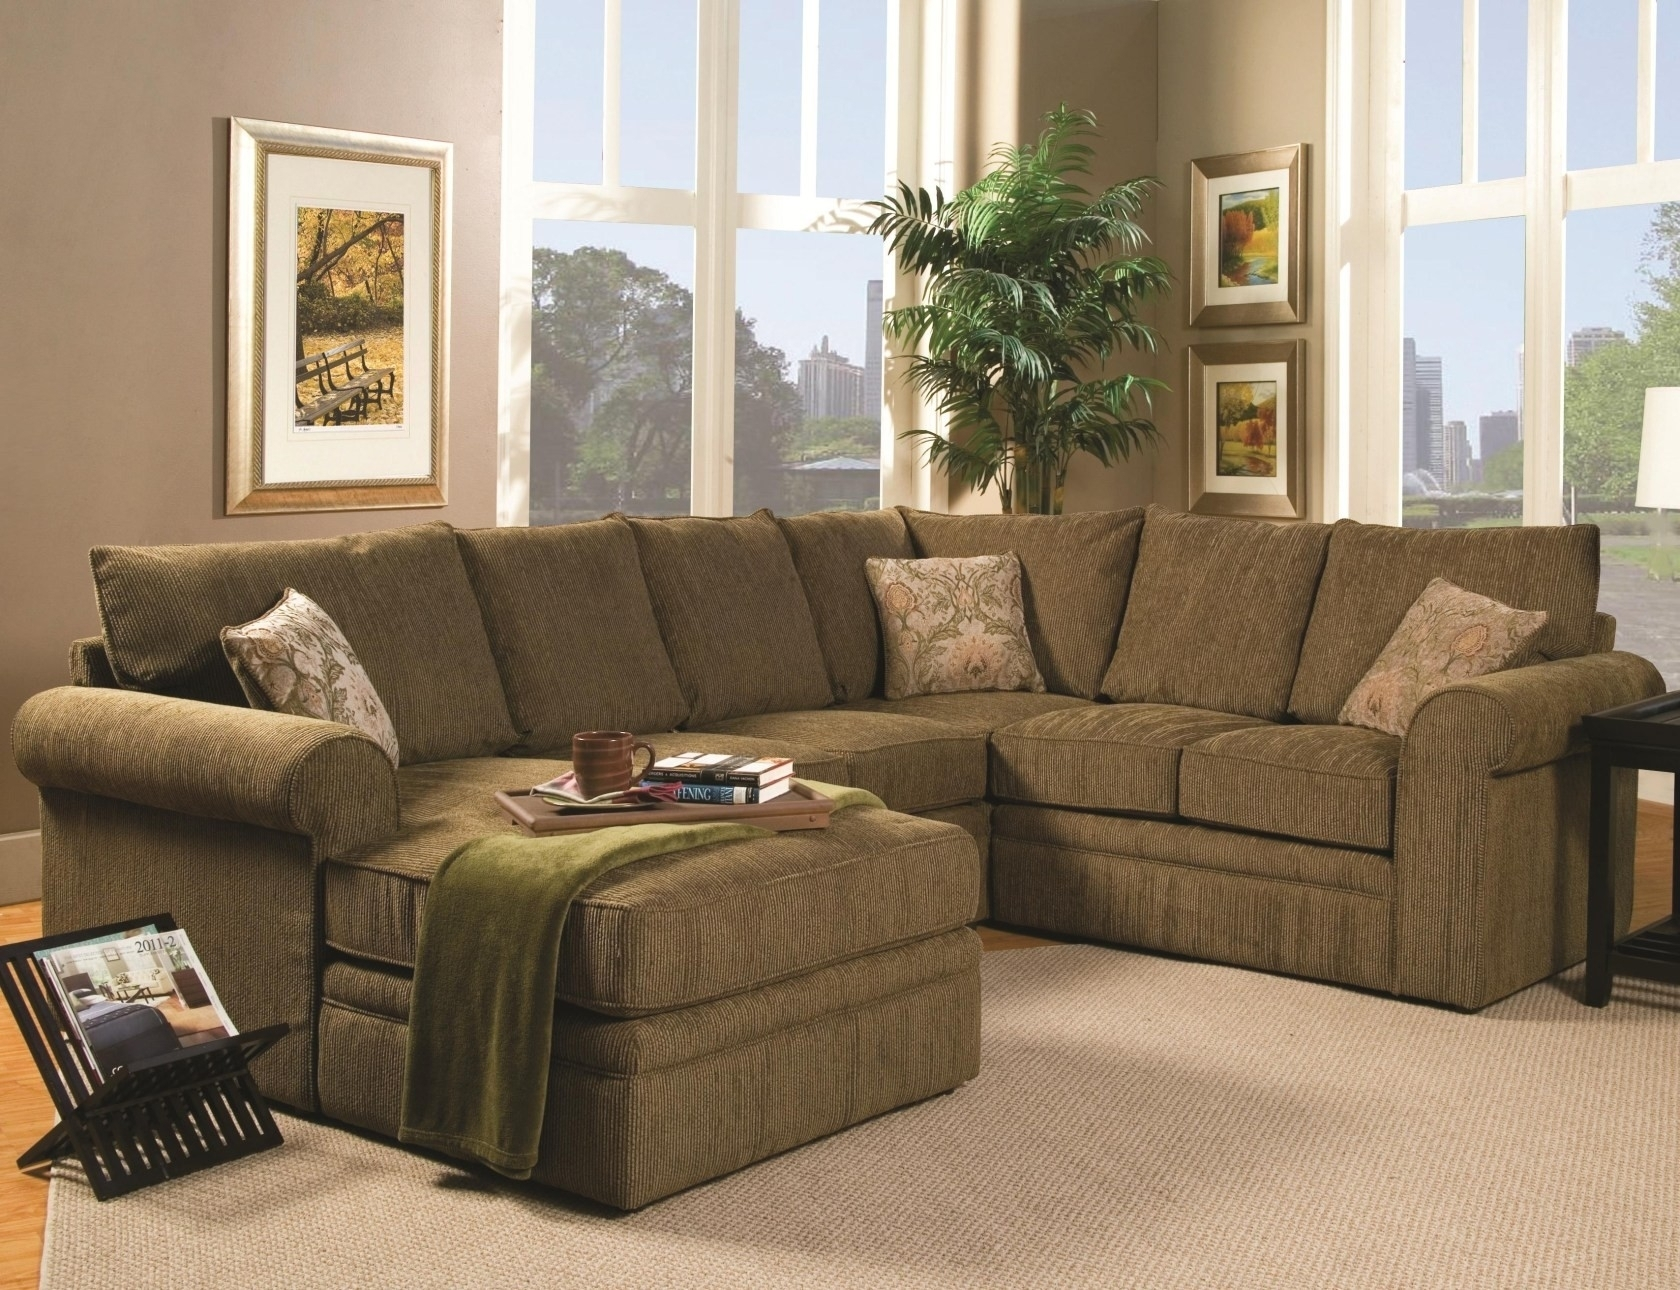 Cool Small U Shaped Sectional Sofa 28 For Bauhaus Sectional Sofa Within Small U Shaped Sectional Sofas (Image 2 of 10)